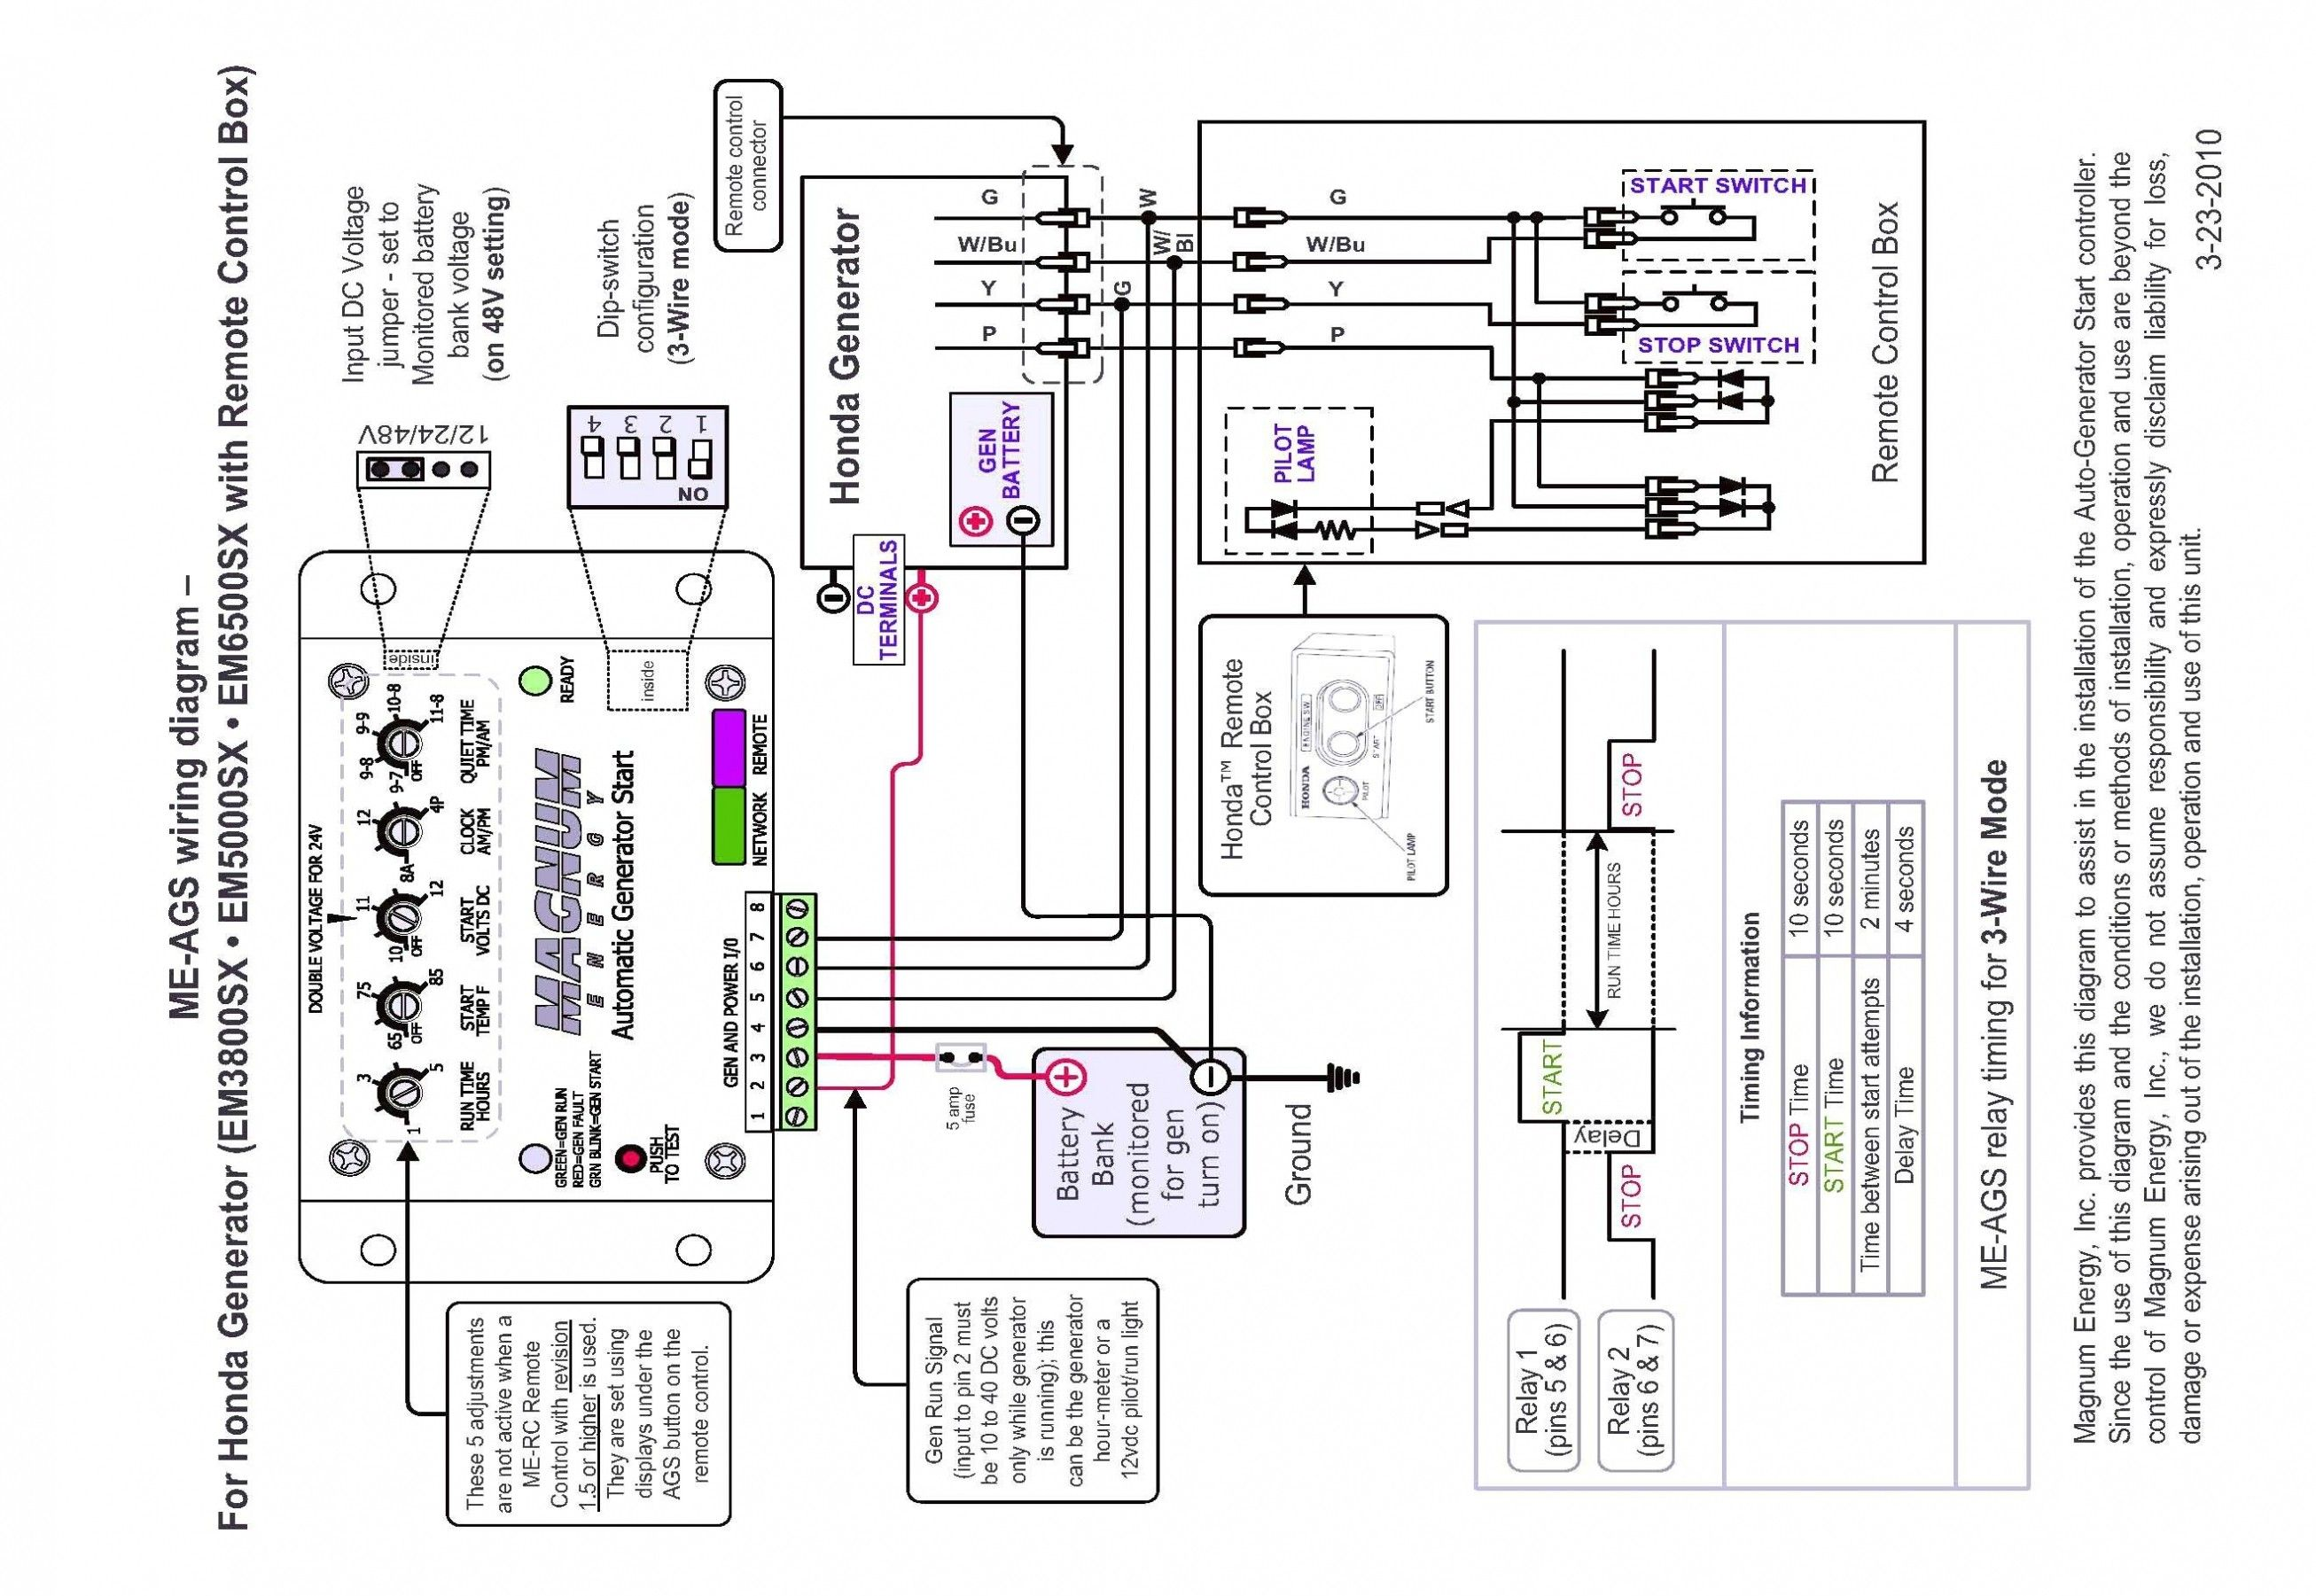 Wiring Diagram For Generator Transfer Switch